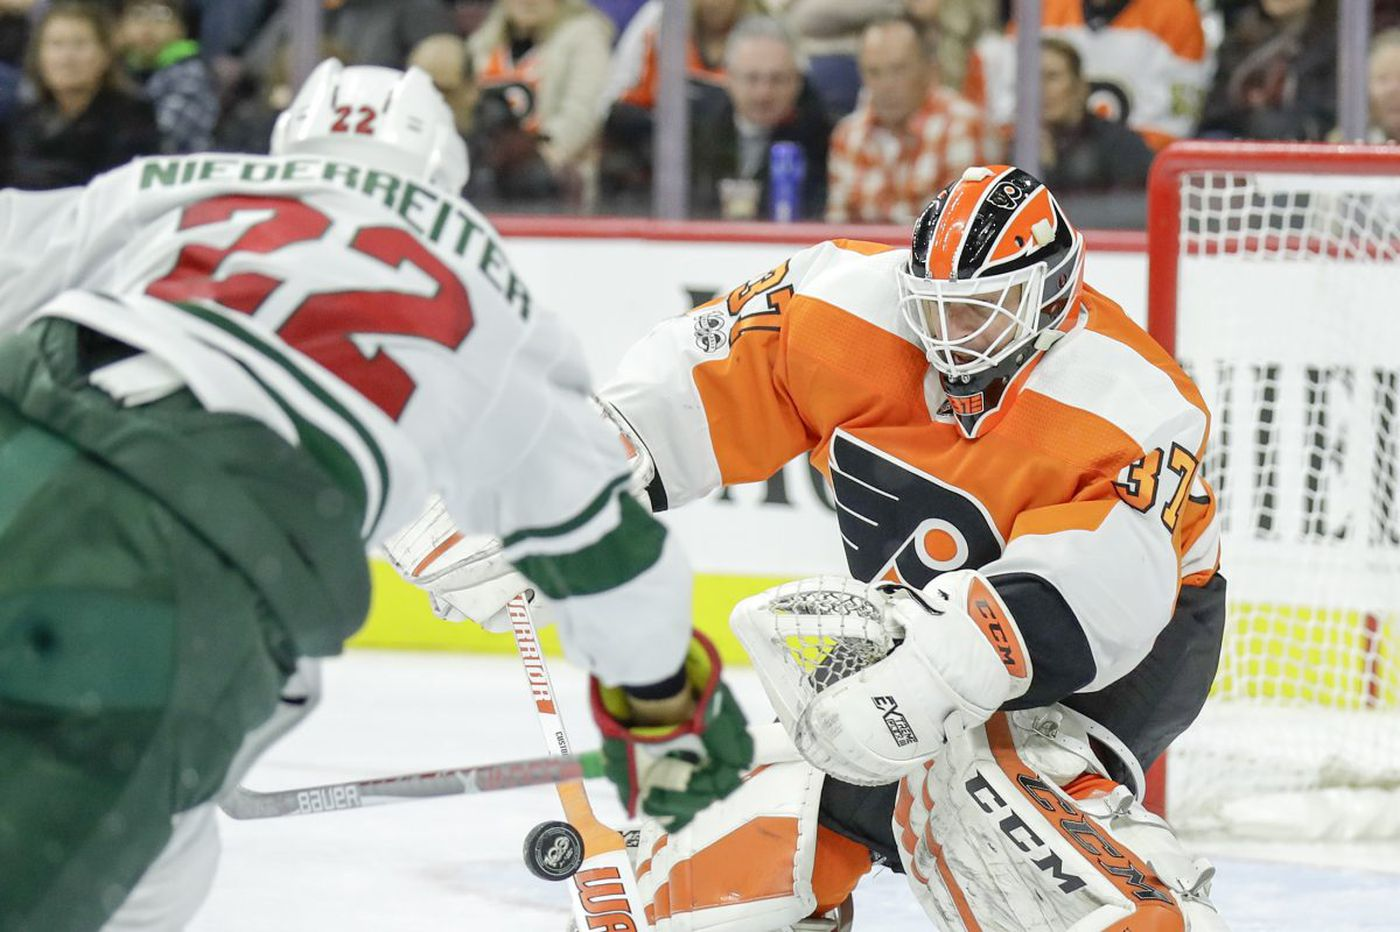 Flyers-Wild preview: Philly looking for revenge against hot goalie, hotter winger